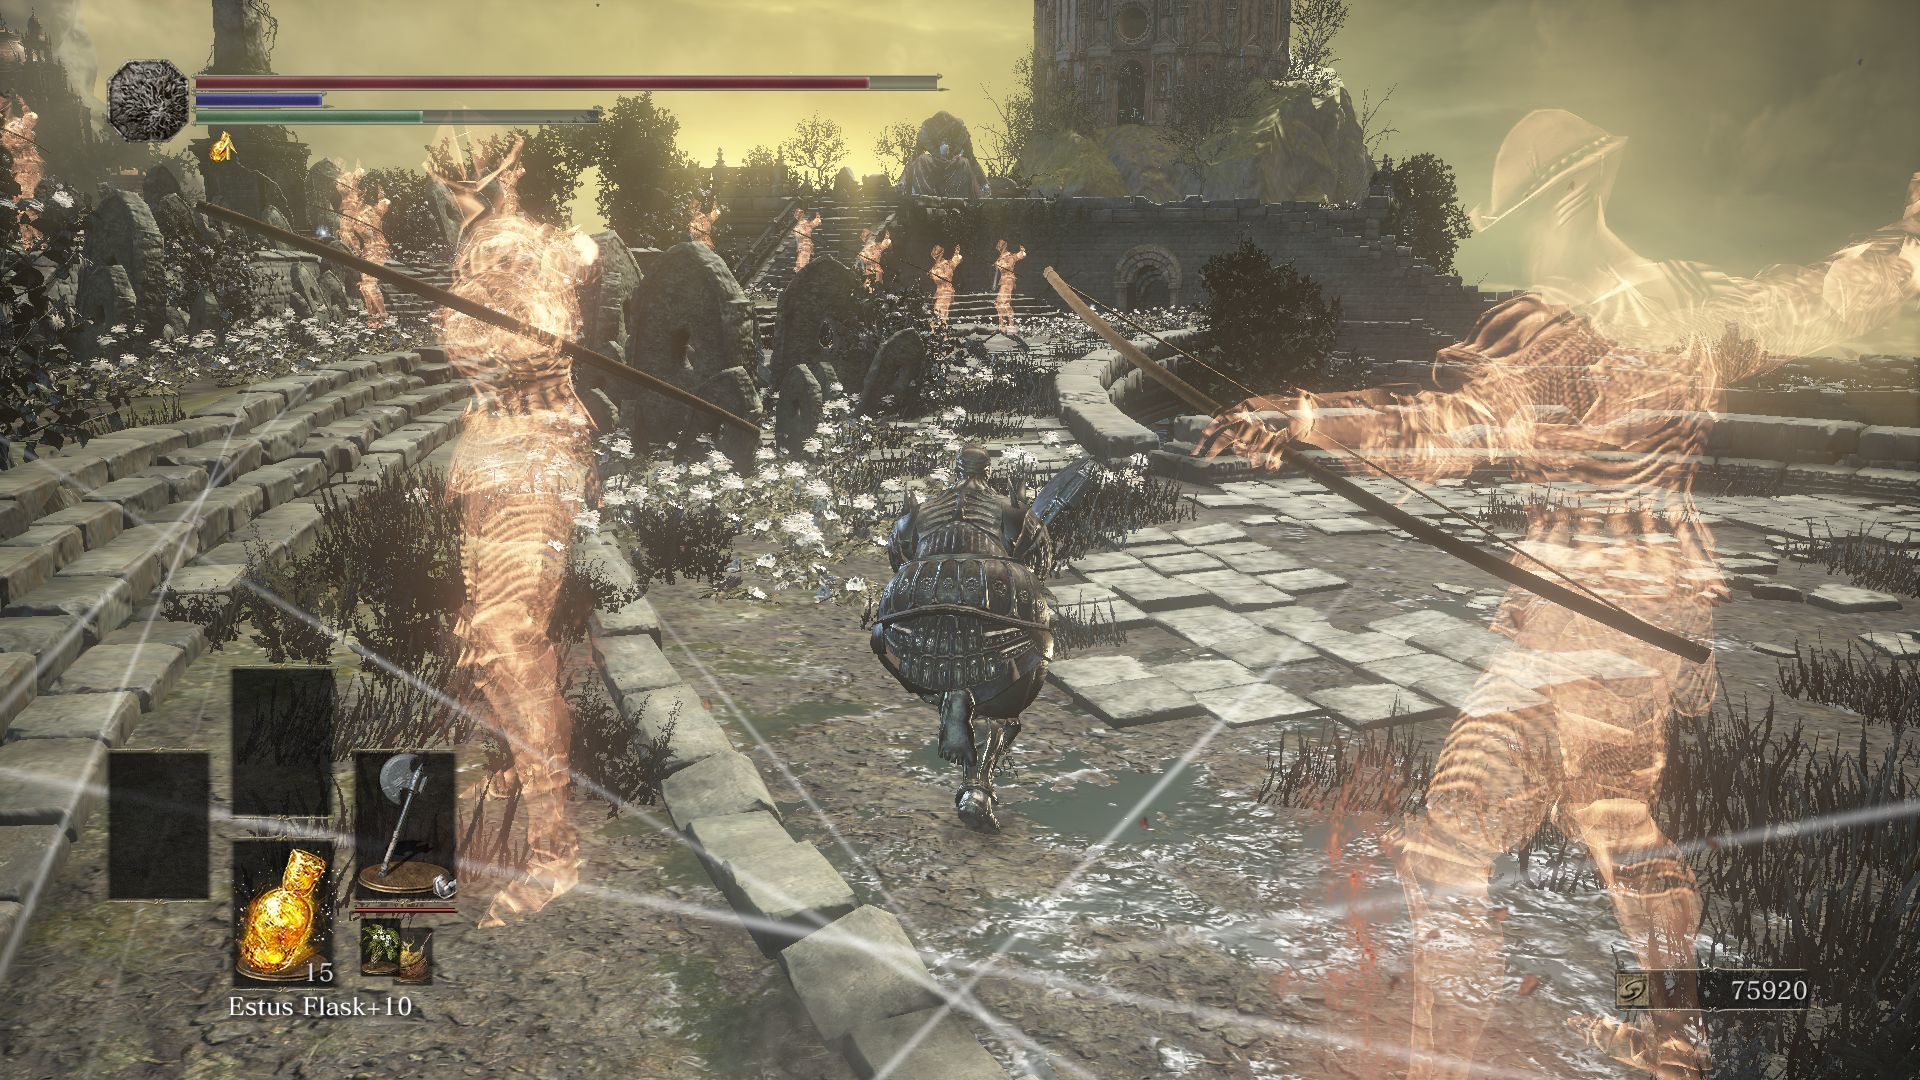 Dark Souls III The Ringed City Windows Of Course I Didnx27